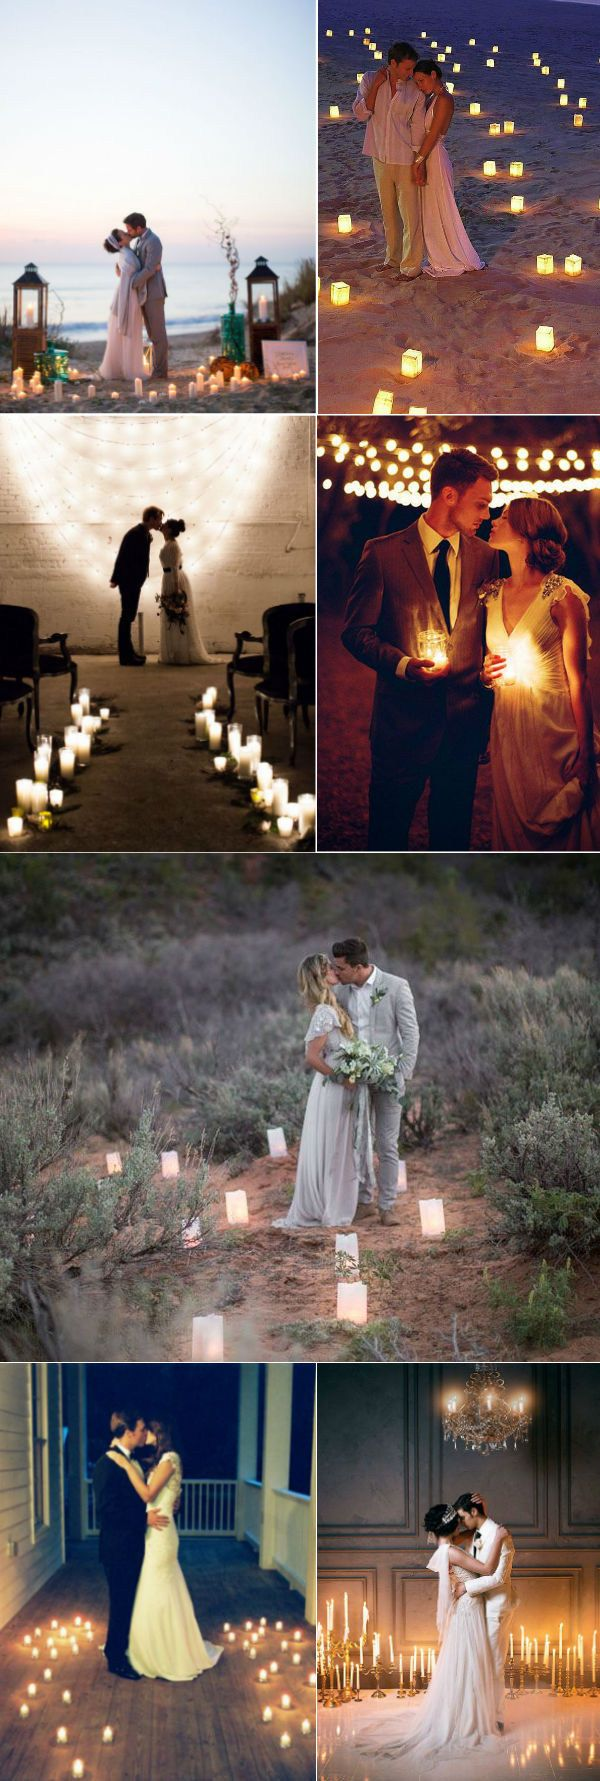 36 Stunning Wedding Ideas With Candles Elegantweddinginvites Com Blog Romantic Wedding Photography Wedding Photos Beach Wedding Photos